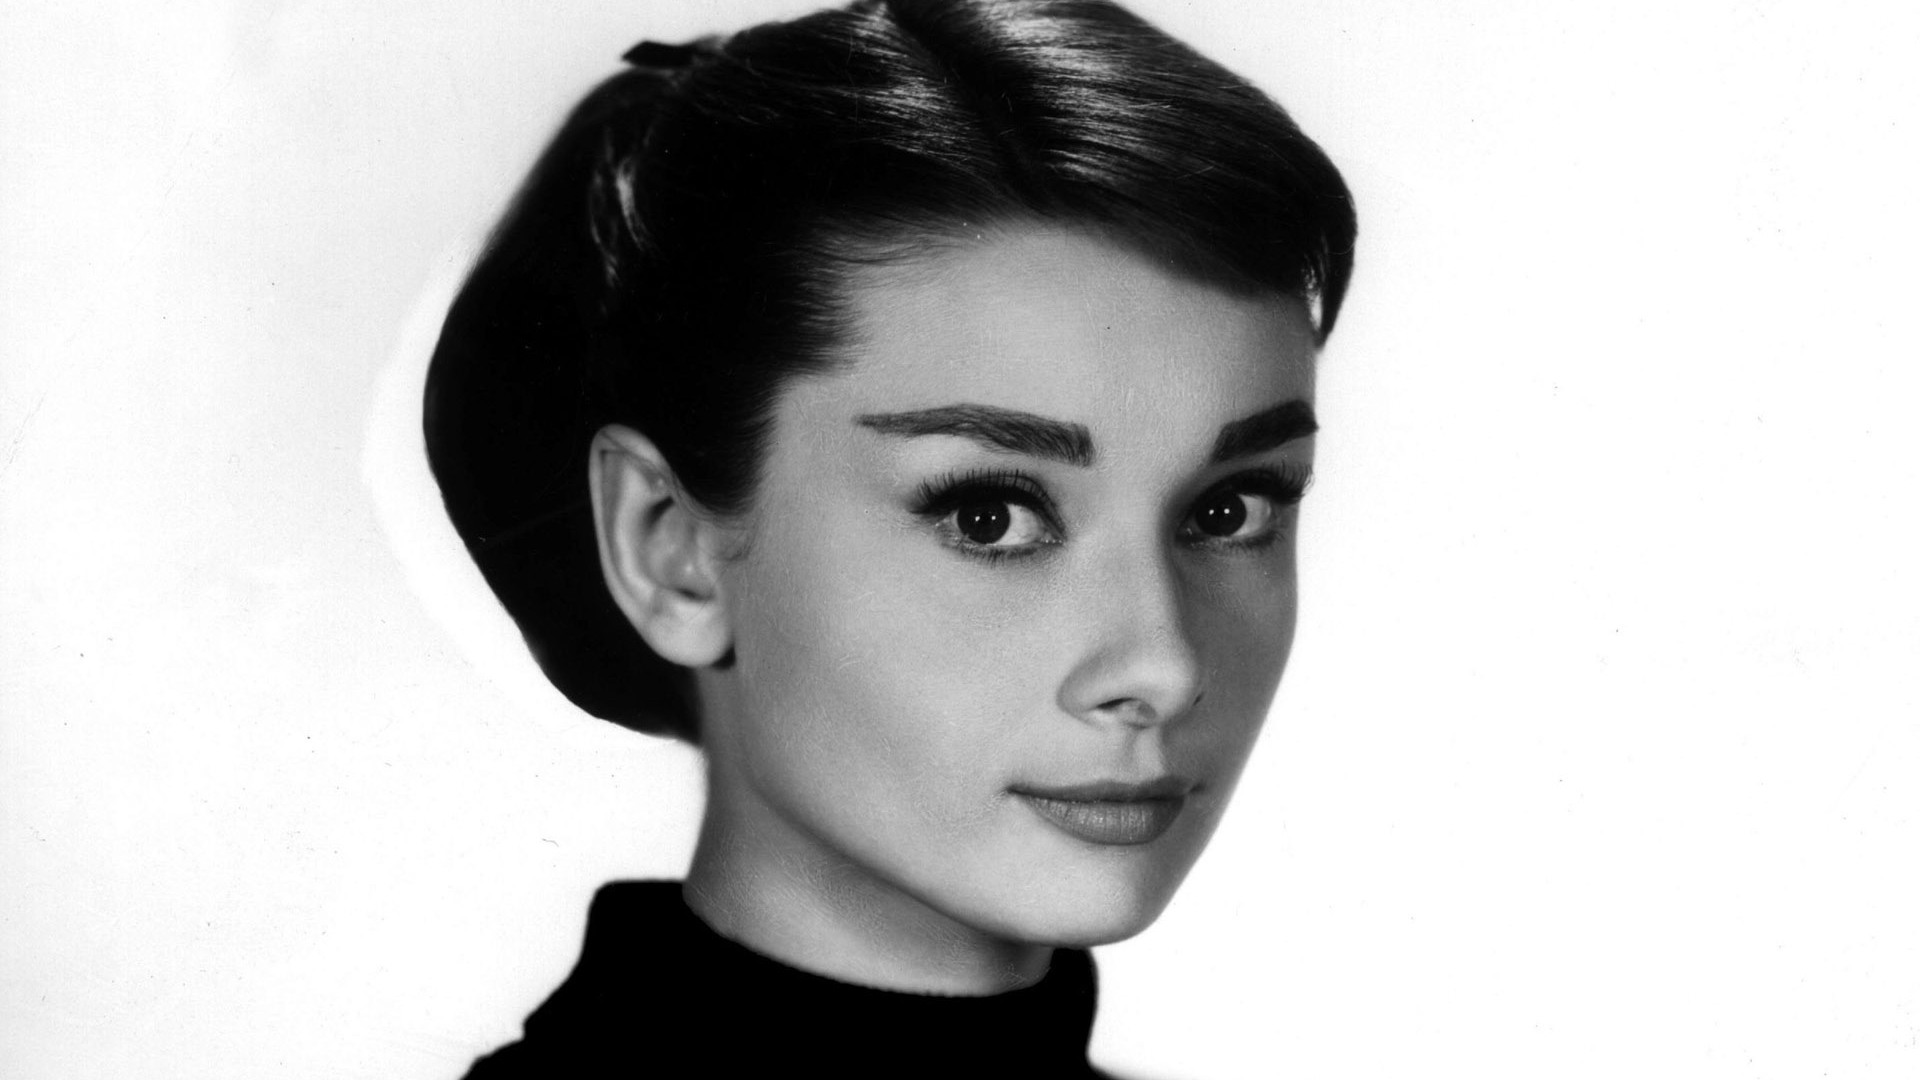 audrey hepburn desktop wallpaper 1920x1080